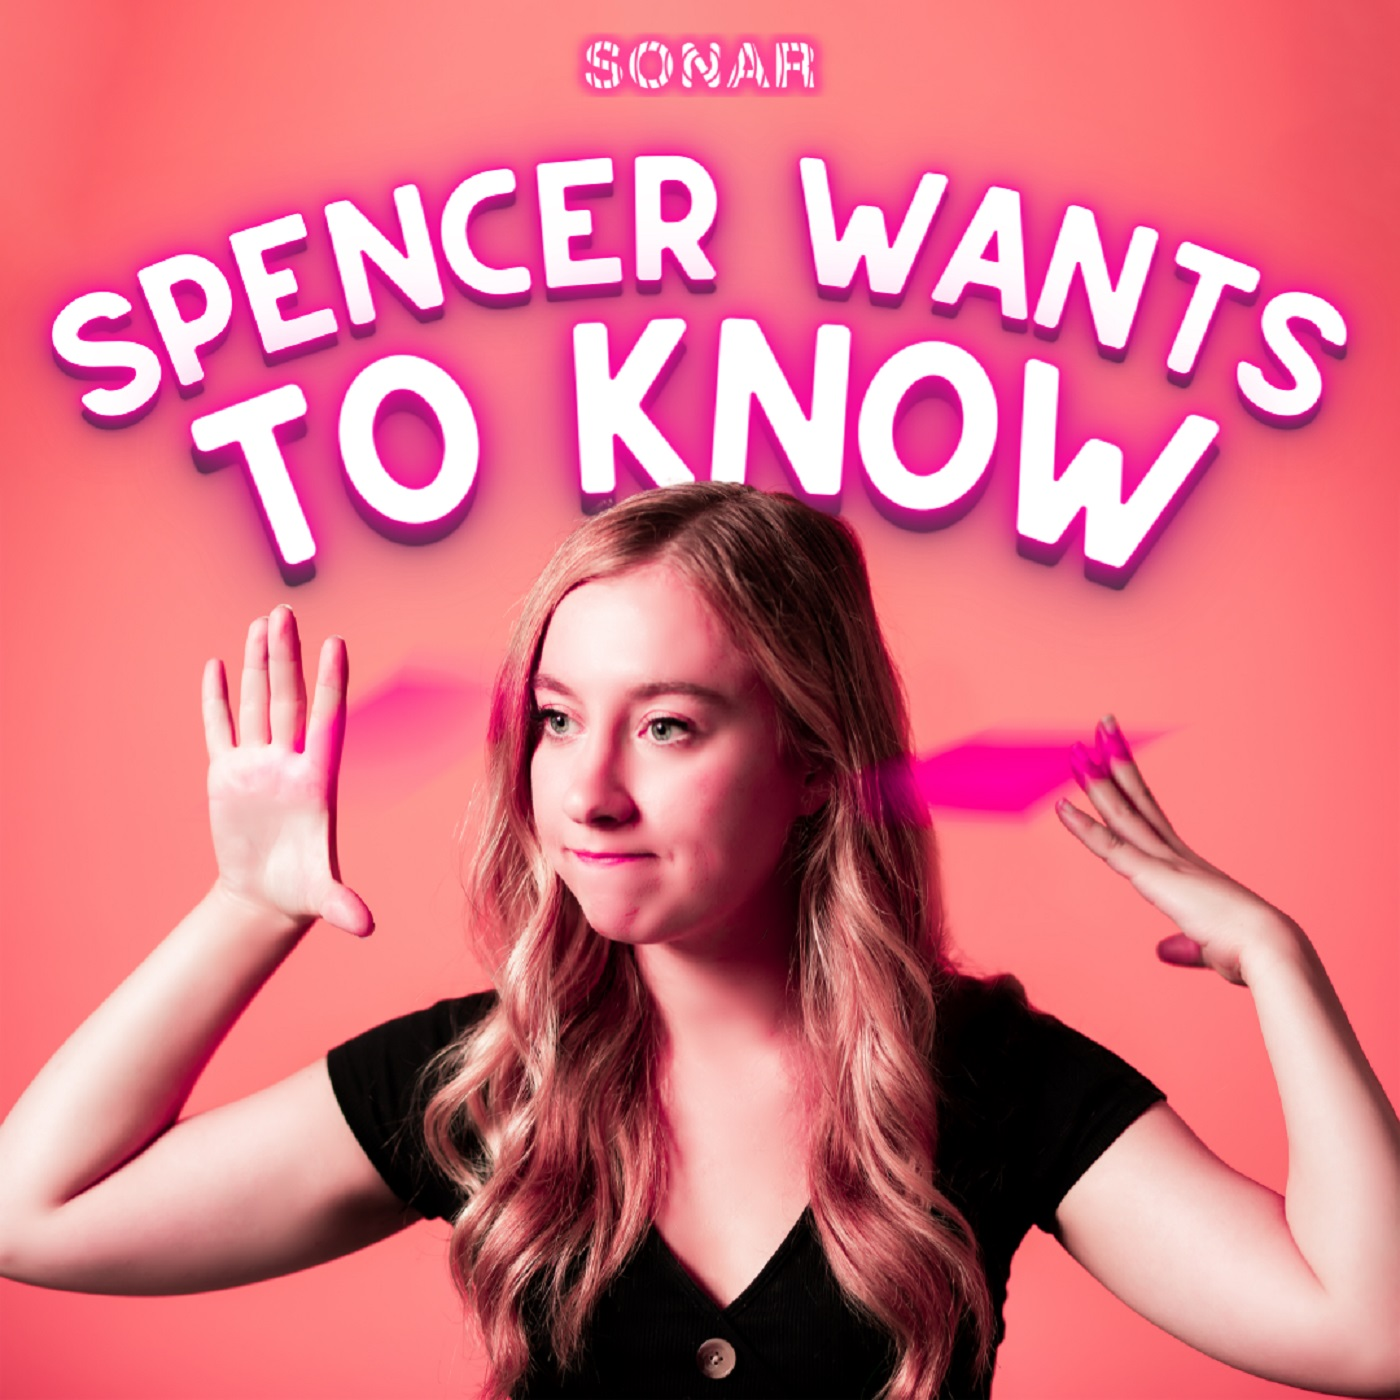 Spencer Wants To Know